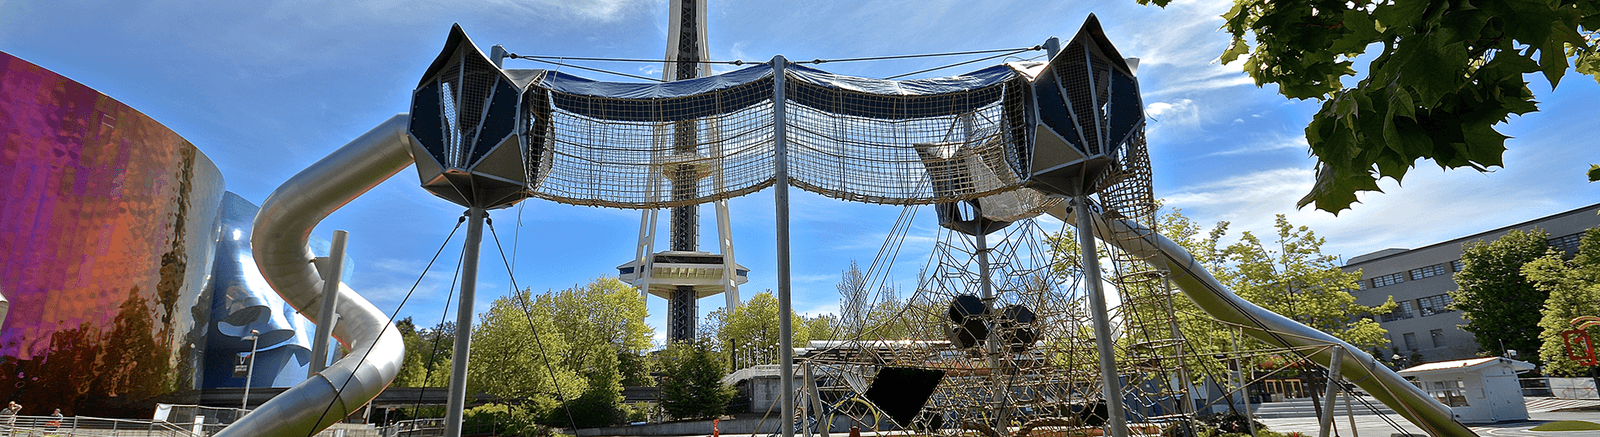 A Sky Play structure is an entire playground in one play structure